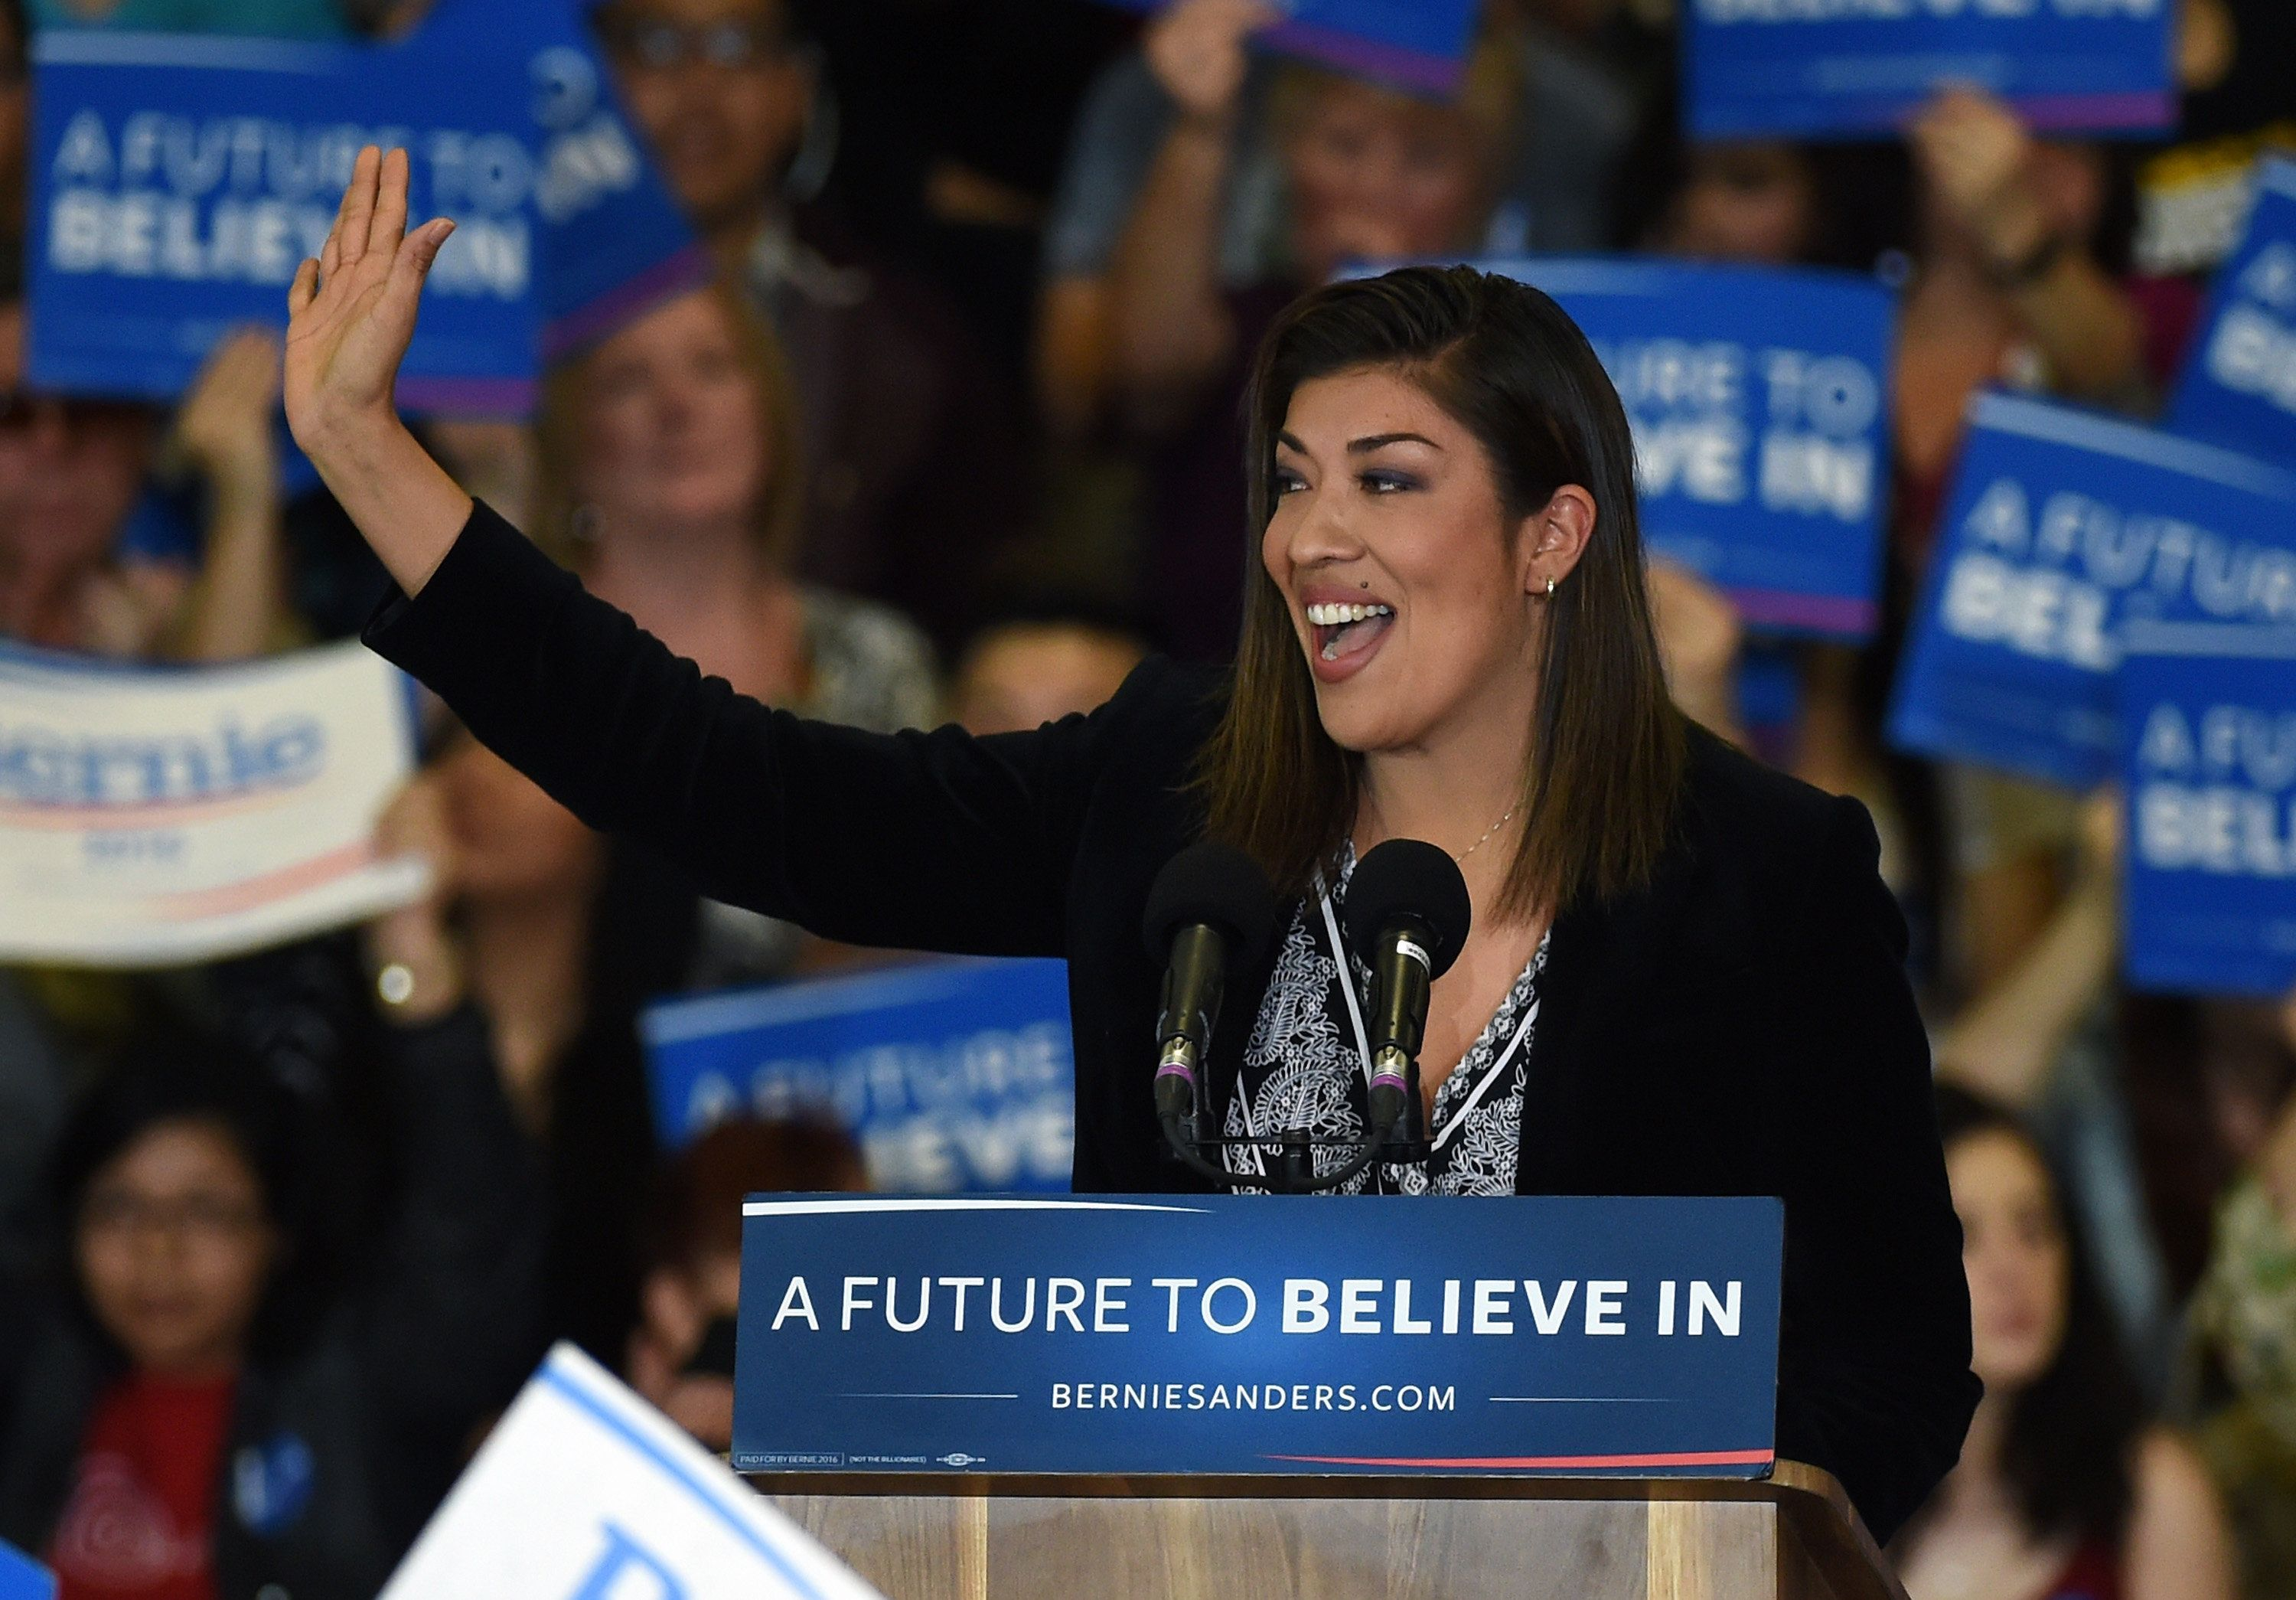 LAS VEGAS, NV - FEBRUARY 14:  Democratic congressional candidate Lucy Flores speaks at a campaign rally for Democratic presidential candidate Sen. Bernie Sanders (D-VT) at Bonanza High School on February 14, 2016 in Las Vegas, Nevada. Sanders is challenging Hillary Clinton for the Democratic presidential nomination ahead of Nevada's February 20th Democratic caucus.  (Photo by Ethan Miller/Getty Images)